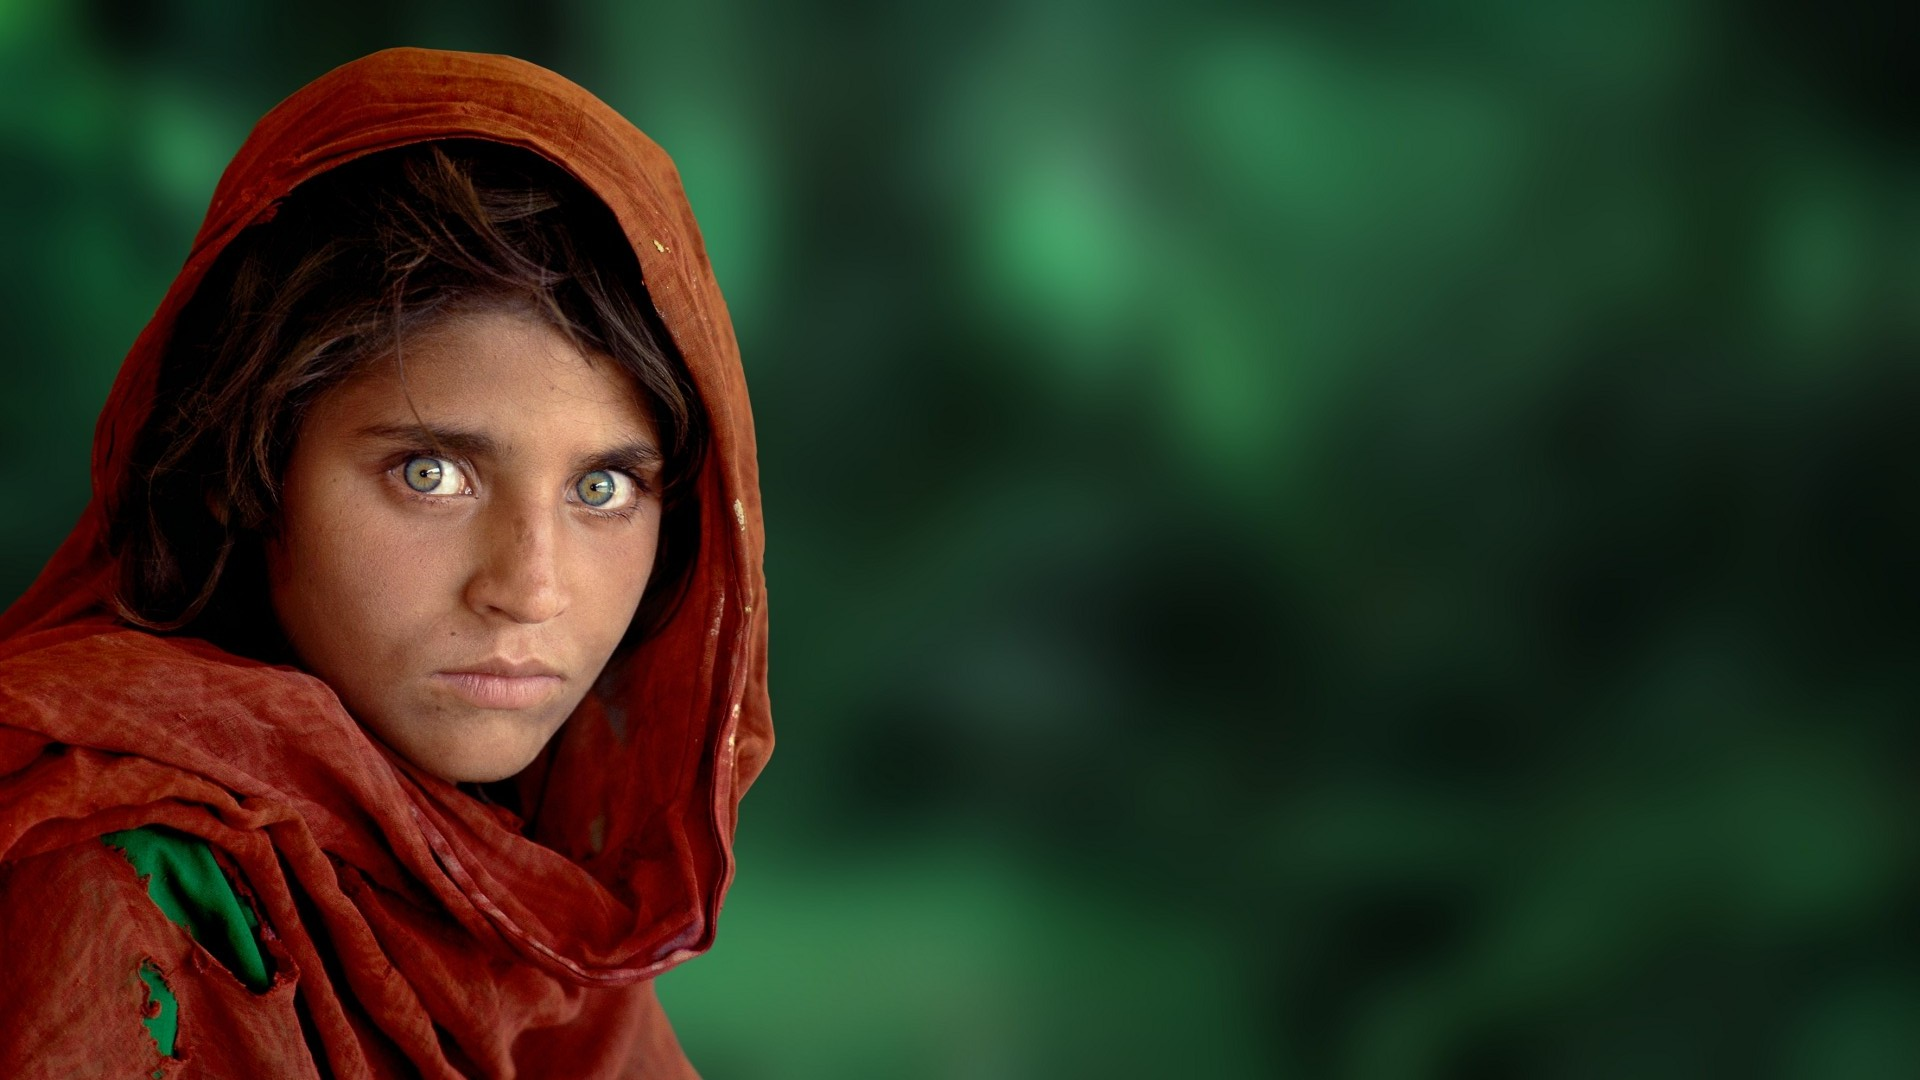 Le Icone di McCurry a Pavia